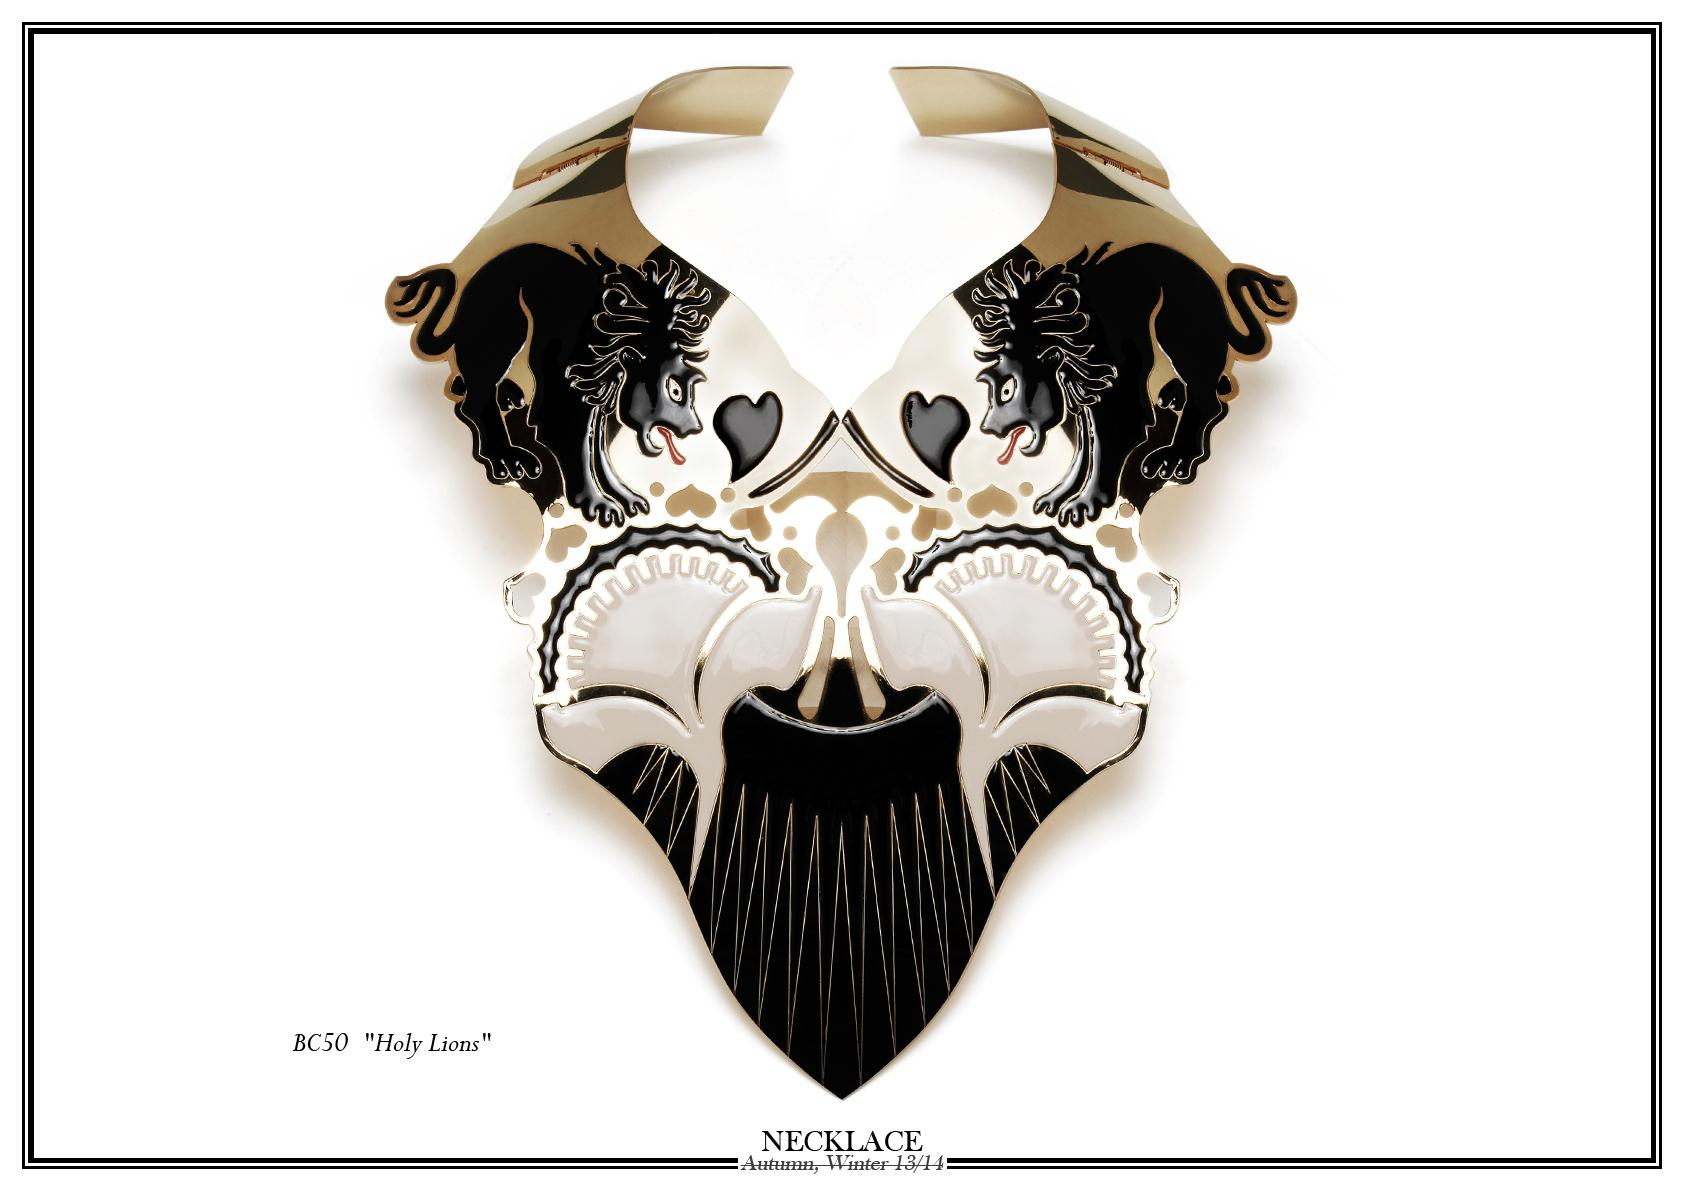 Nuit N°12 - AW13-14 Collection 'Holy Lions' Necklace